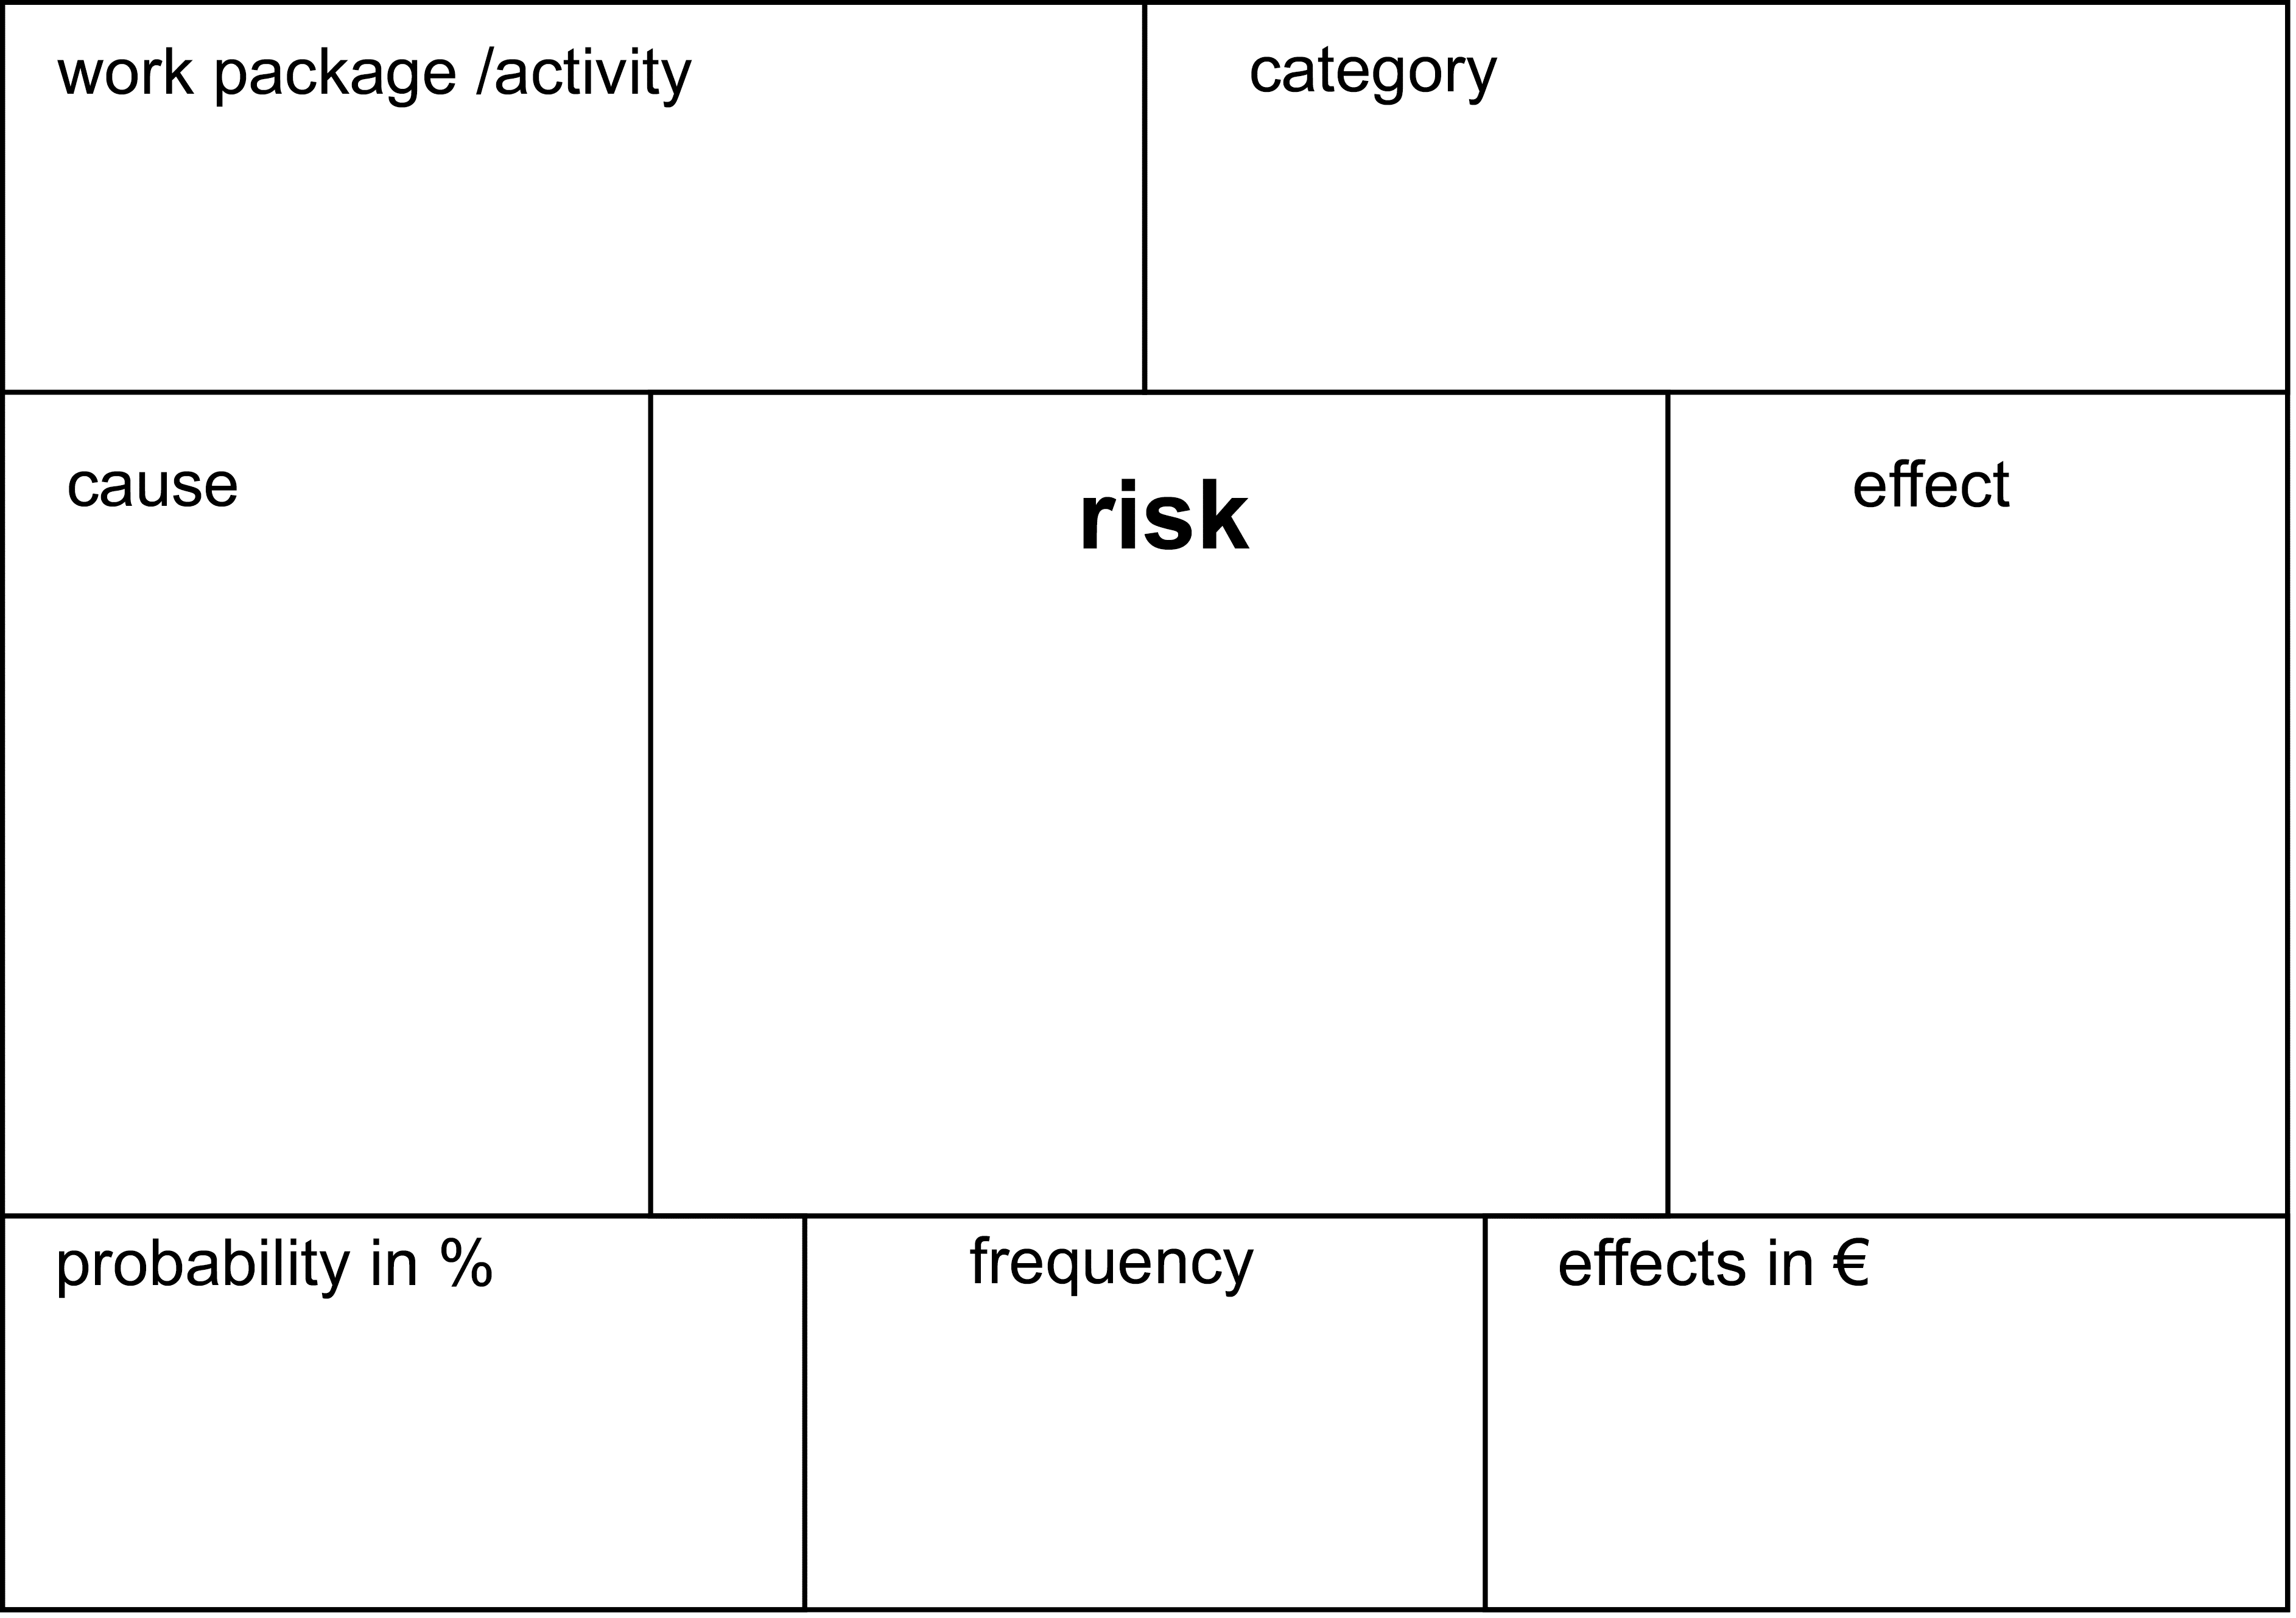 risk pin-up board cards